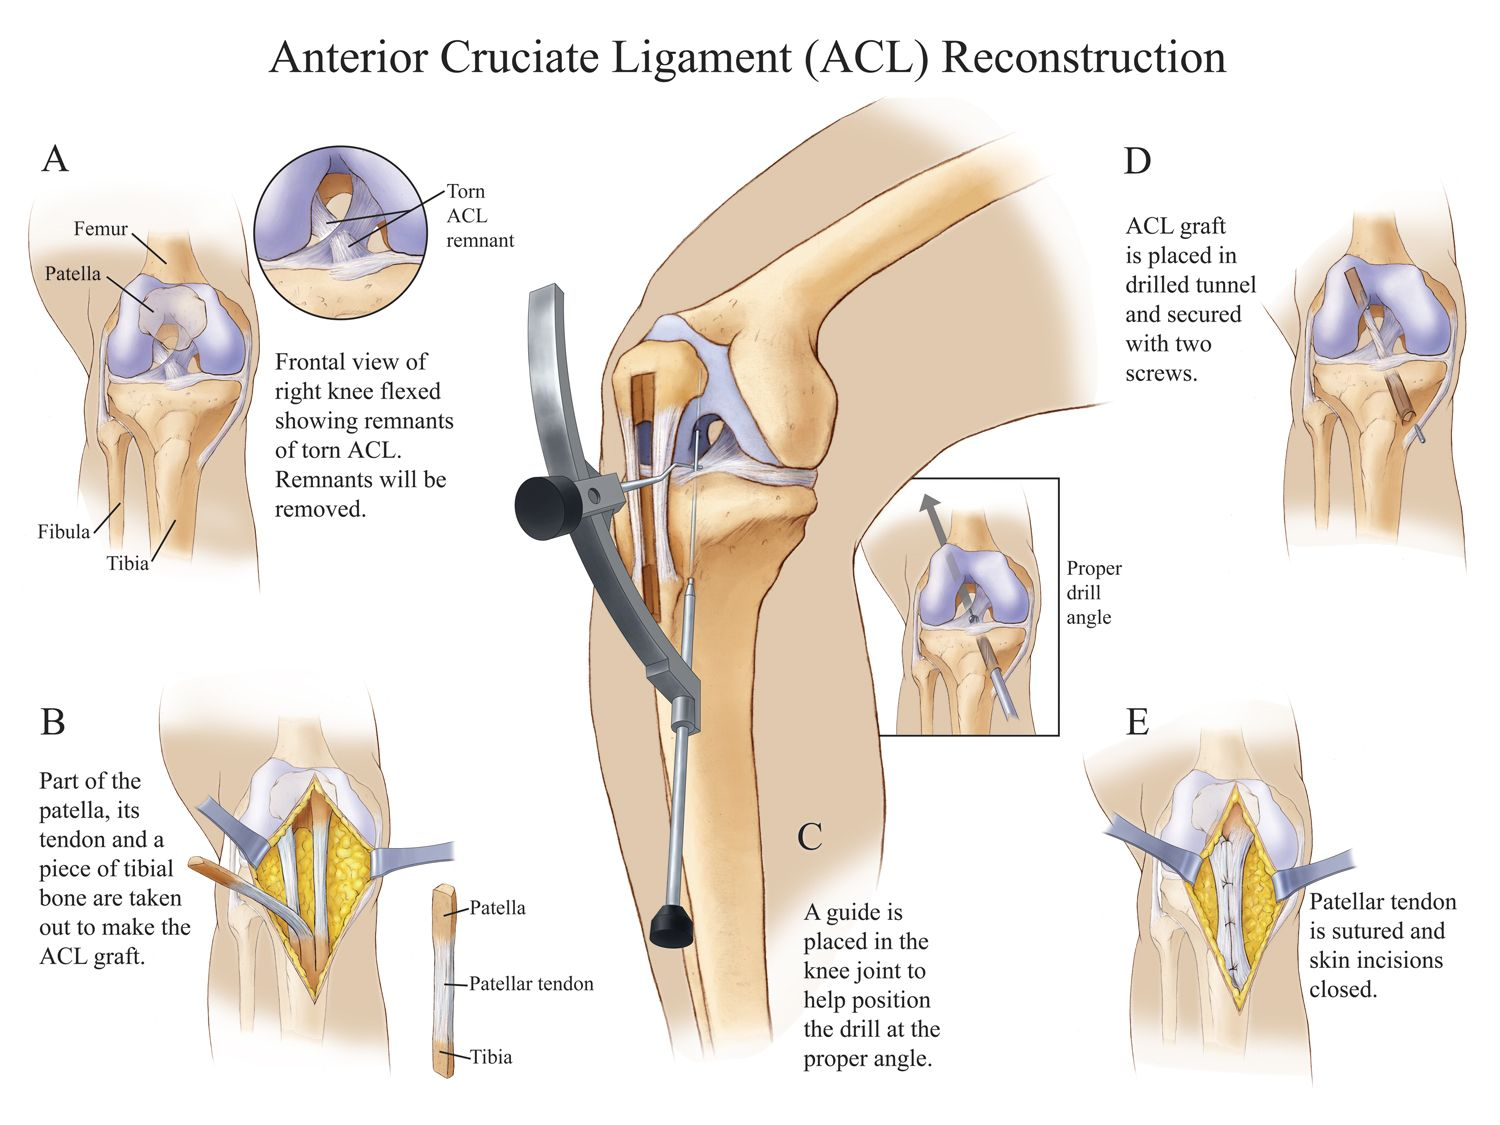 Anterior Cruciate Ligament Acl Reconstruction Compel Visuals